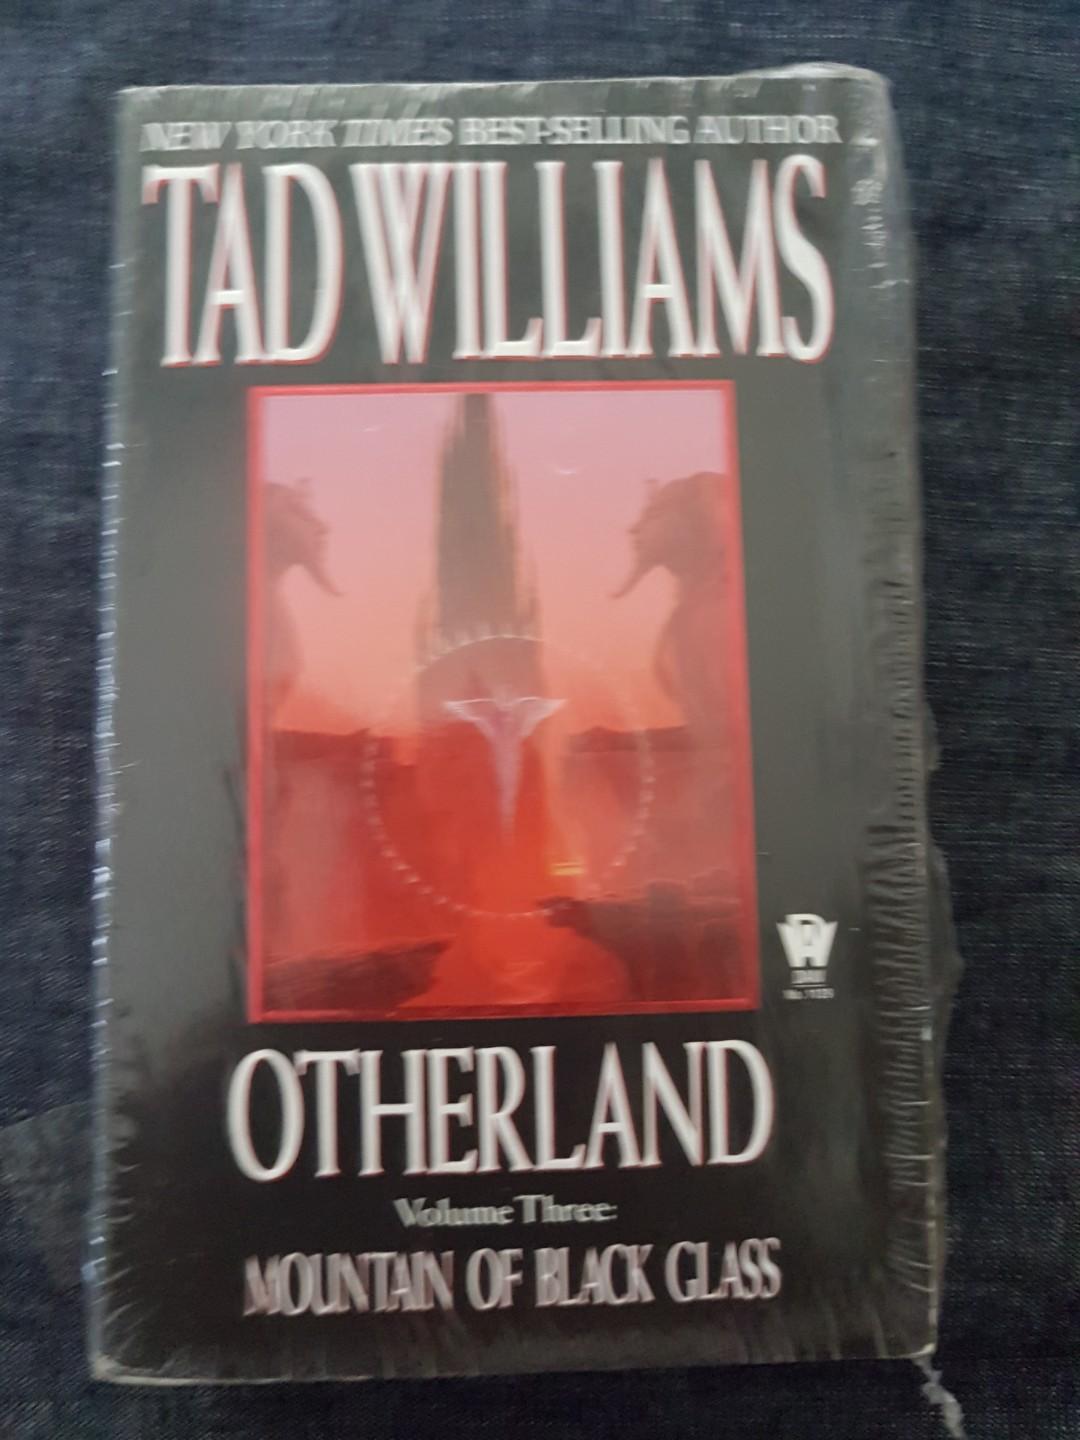 Otherland Volume Three: Mountain Of Black Glass by Tad Williams